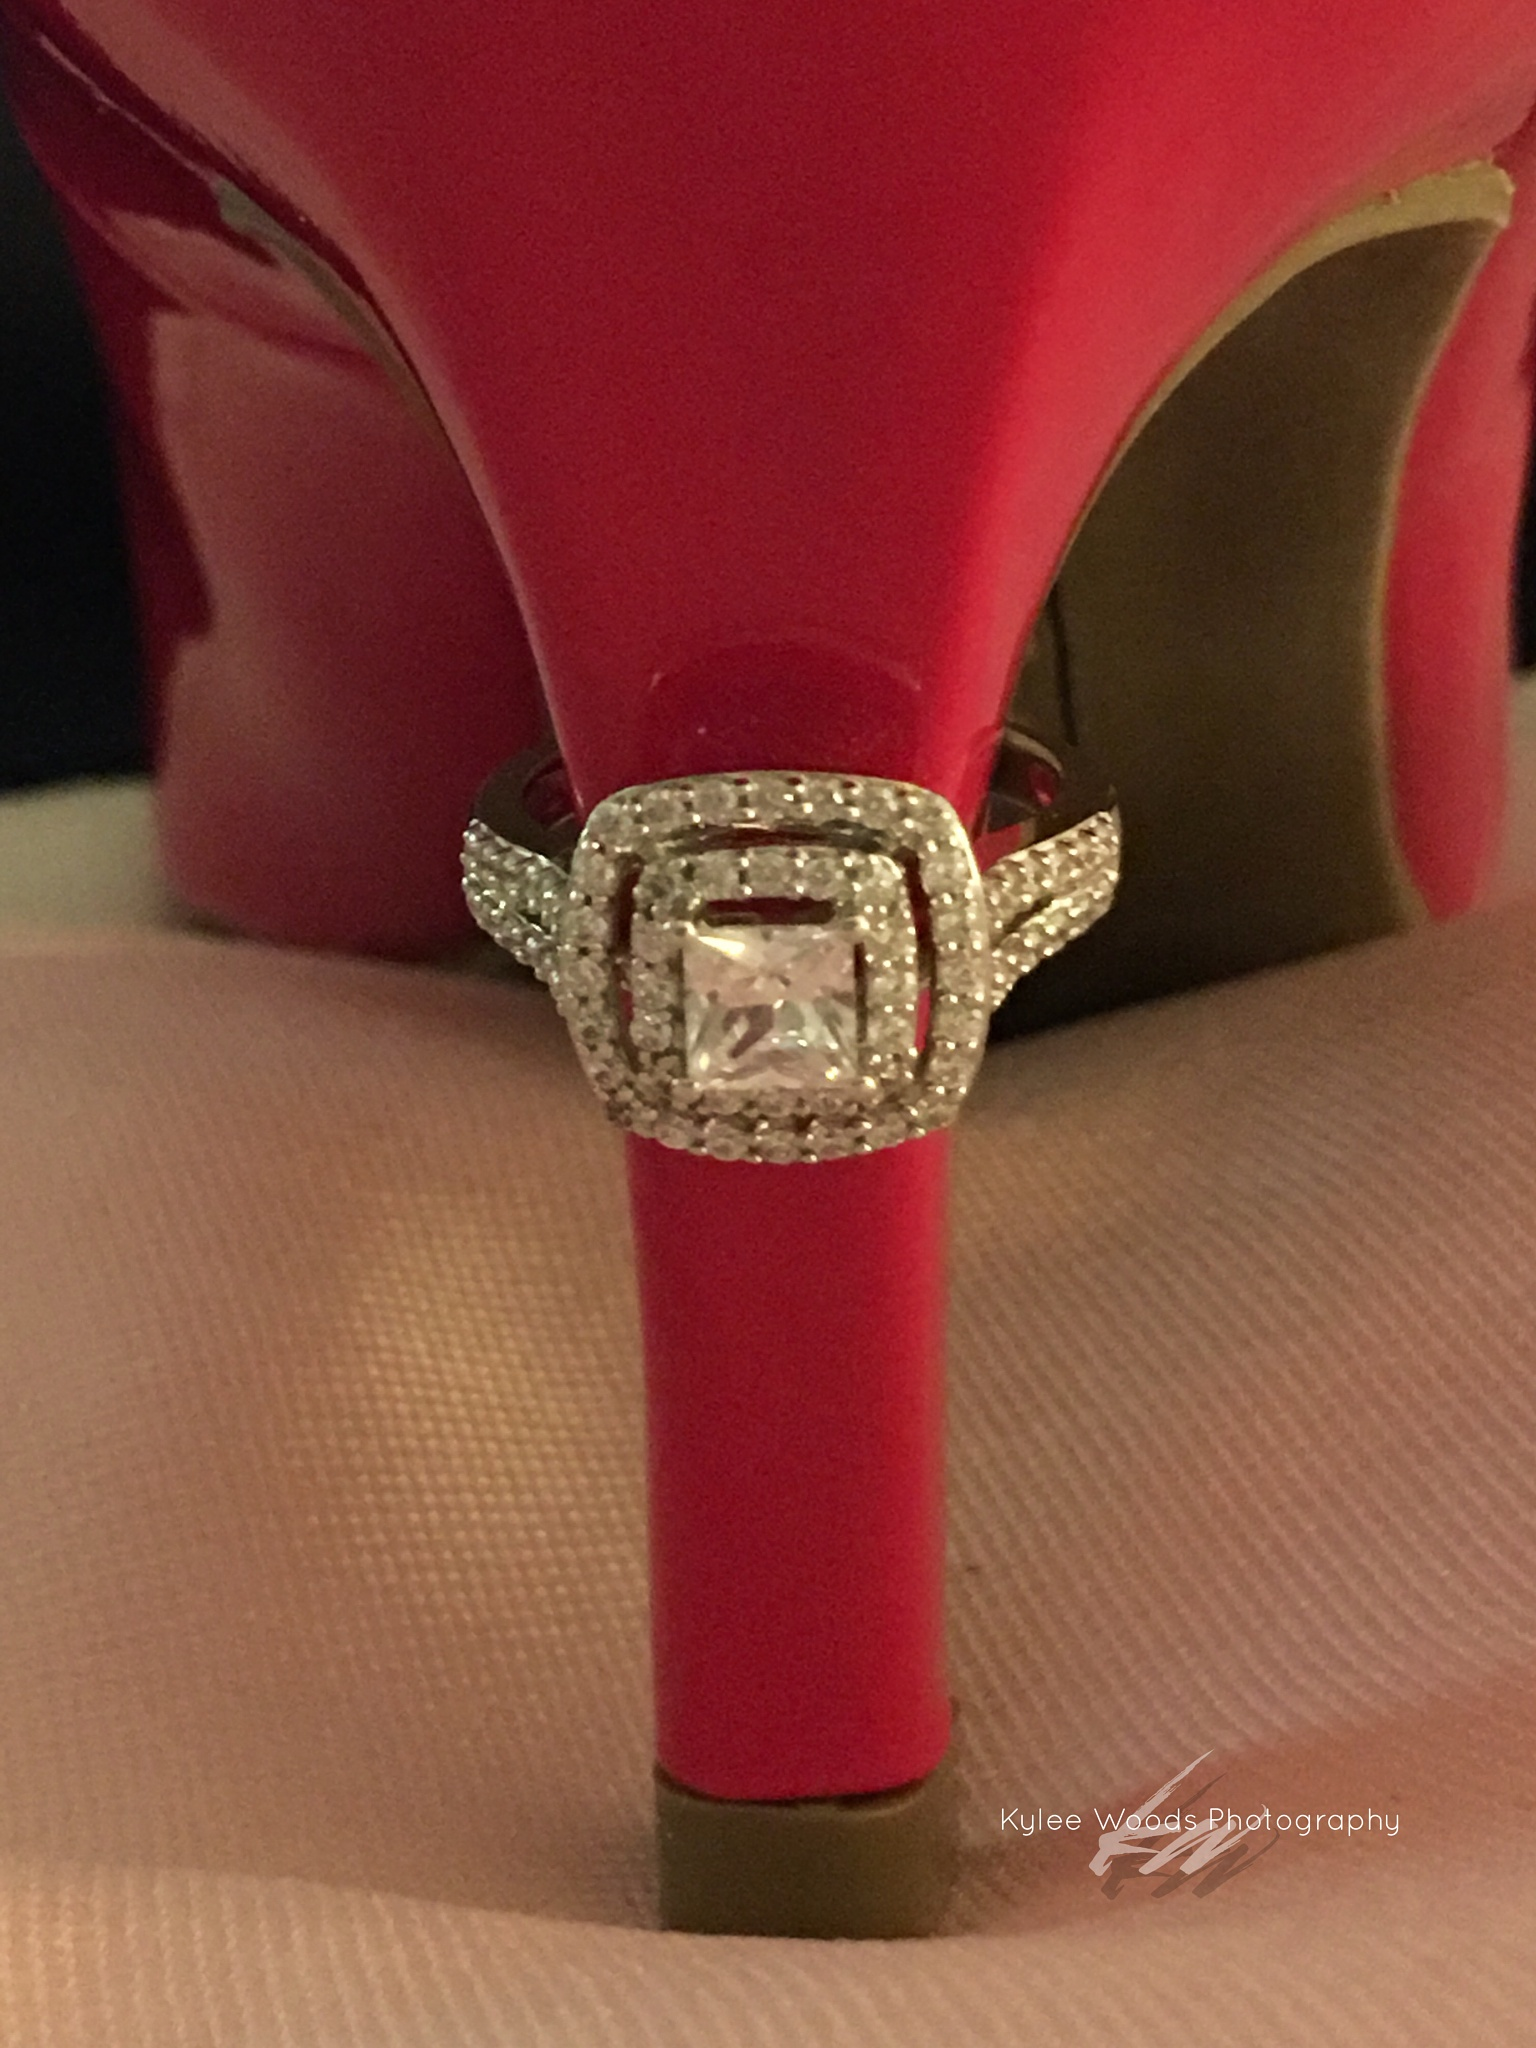 Pink Pumps and Diamonds by kjwoods79